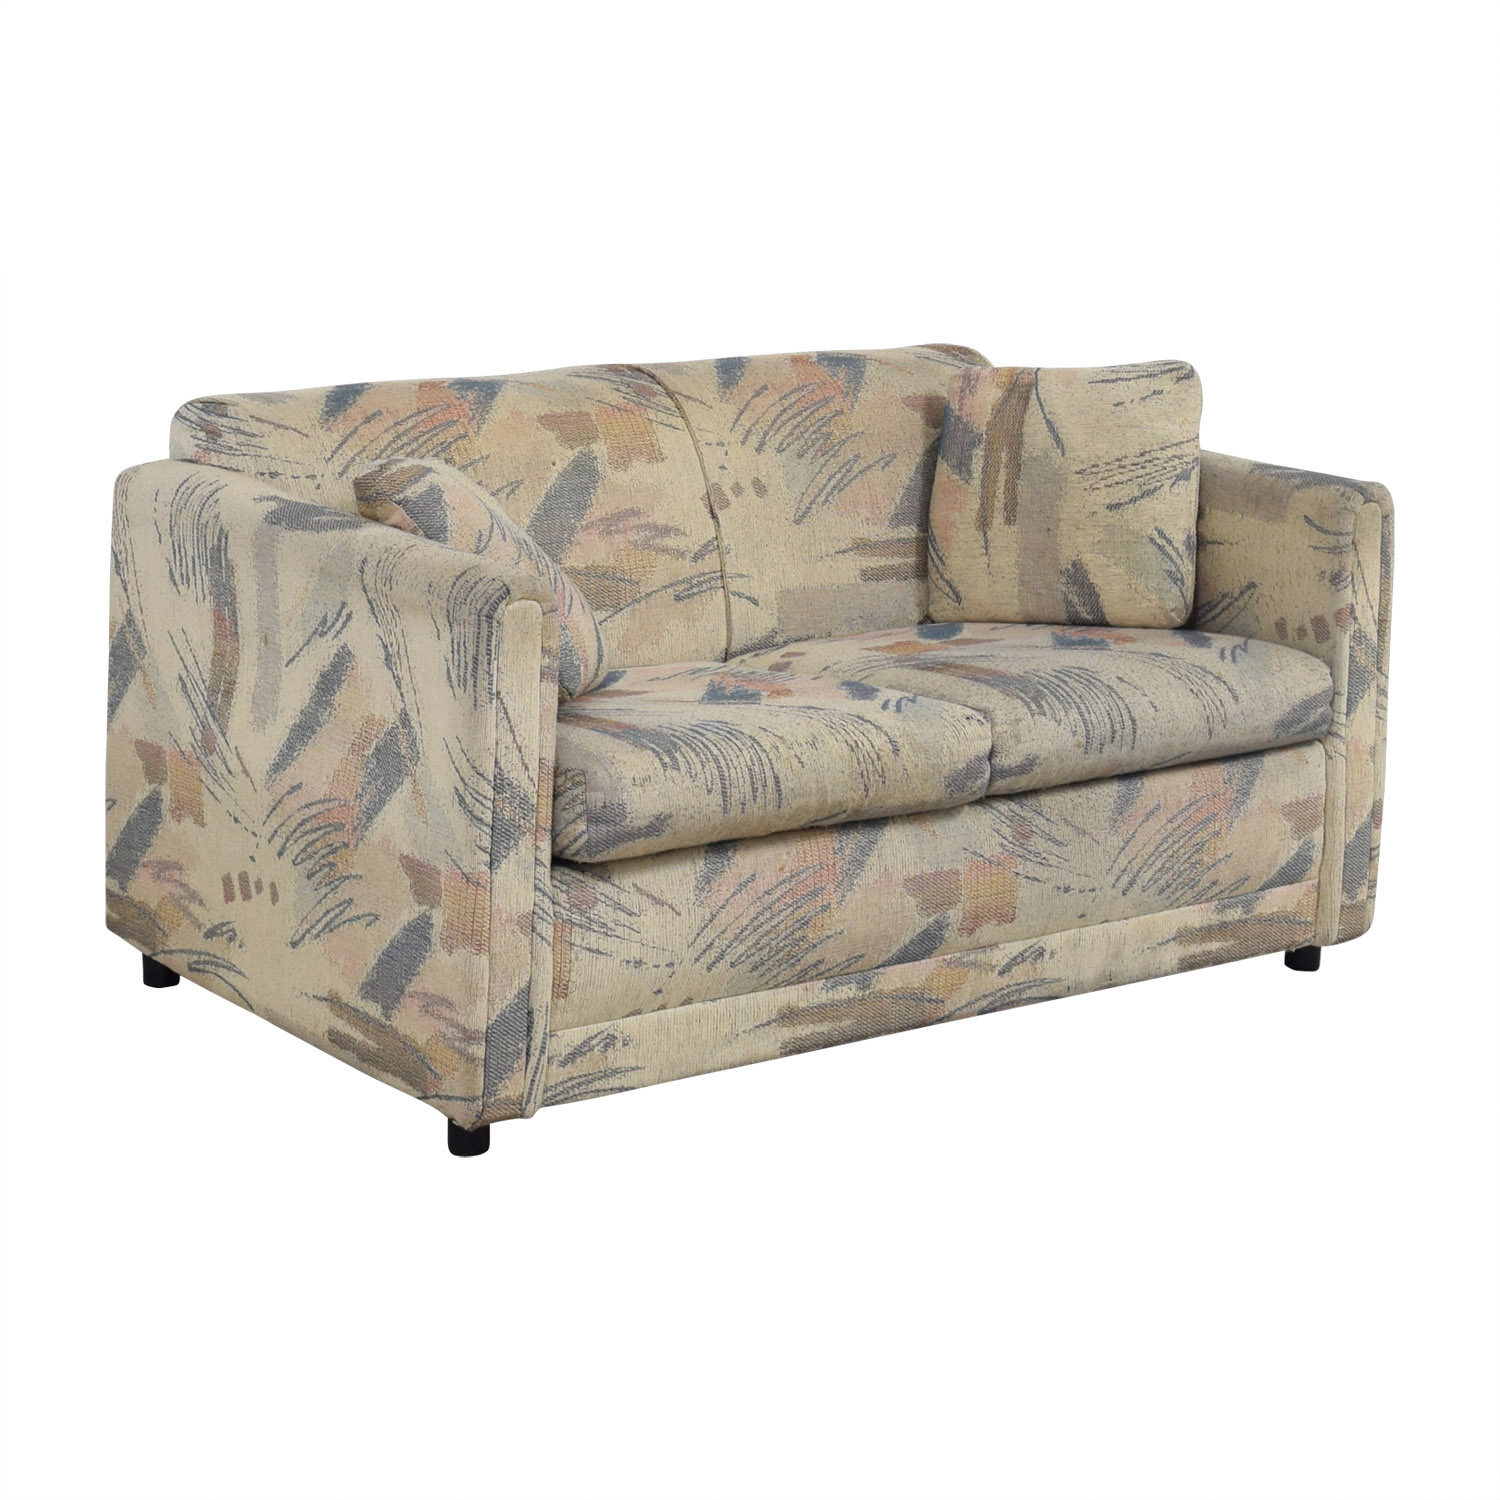 Raymour & Flanigan Raymour & Flanigan Multi-Colored Beige Loveseat dimensions